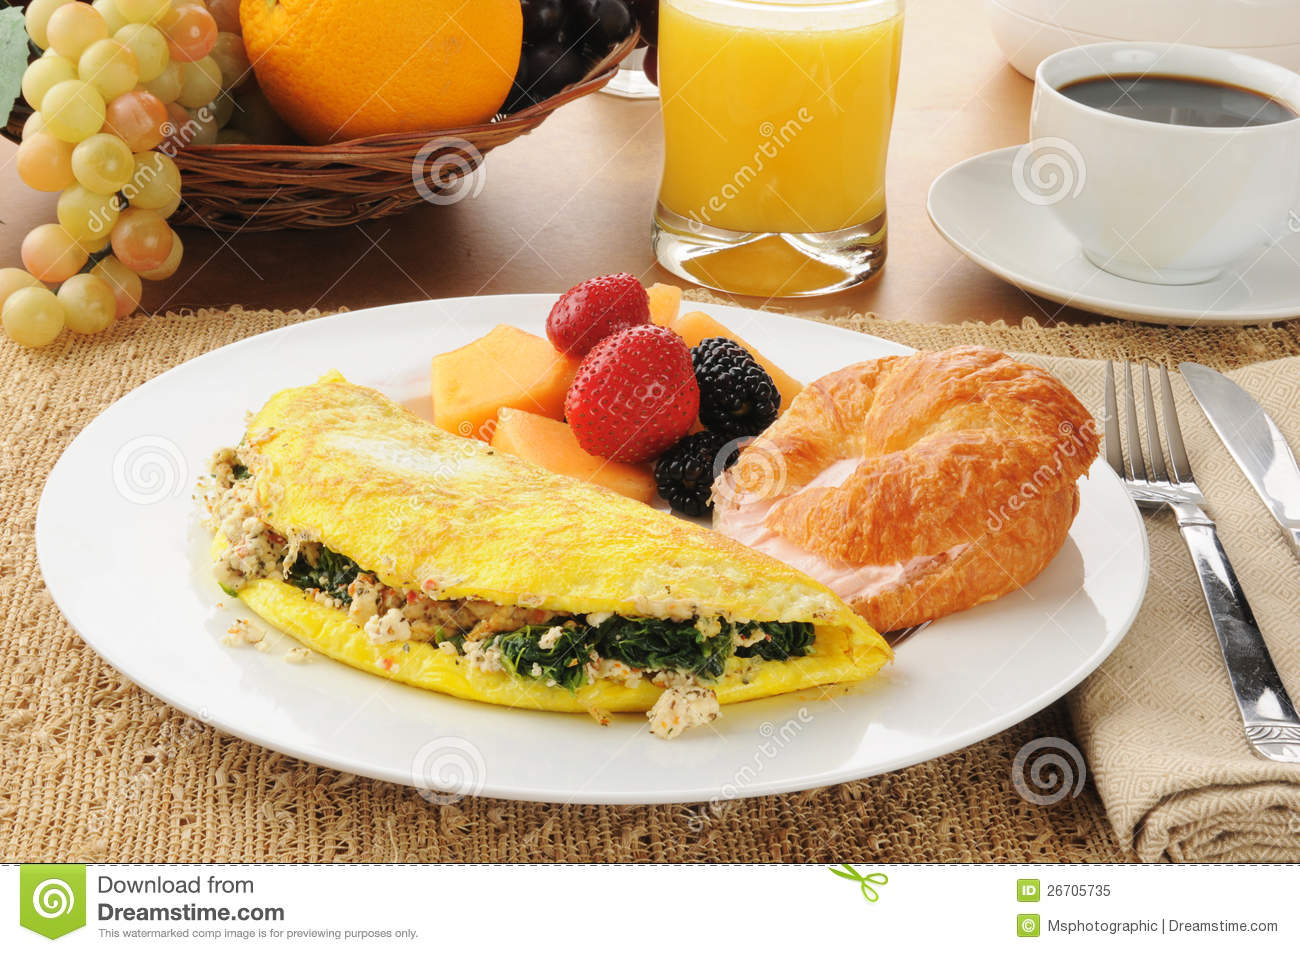 Spinach And Feta Cheese Omelet With A Croissant Royalty Free Stock ...